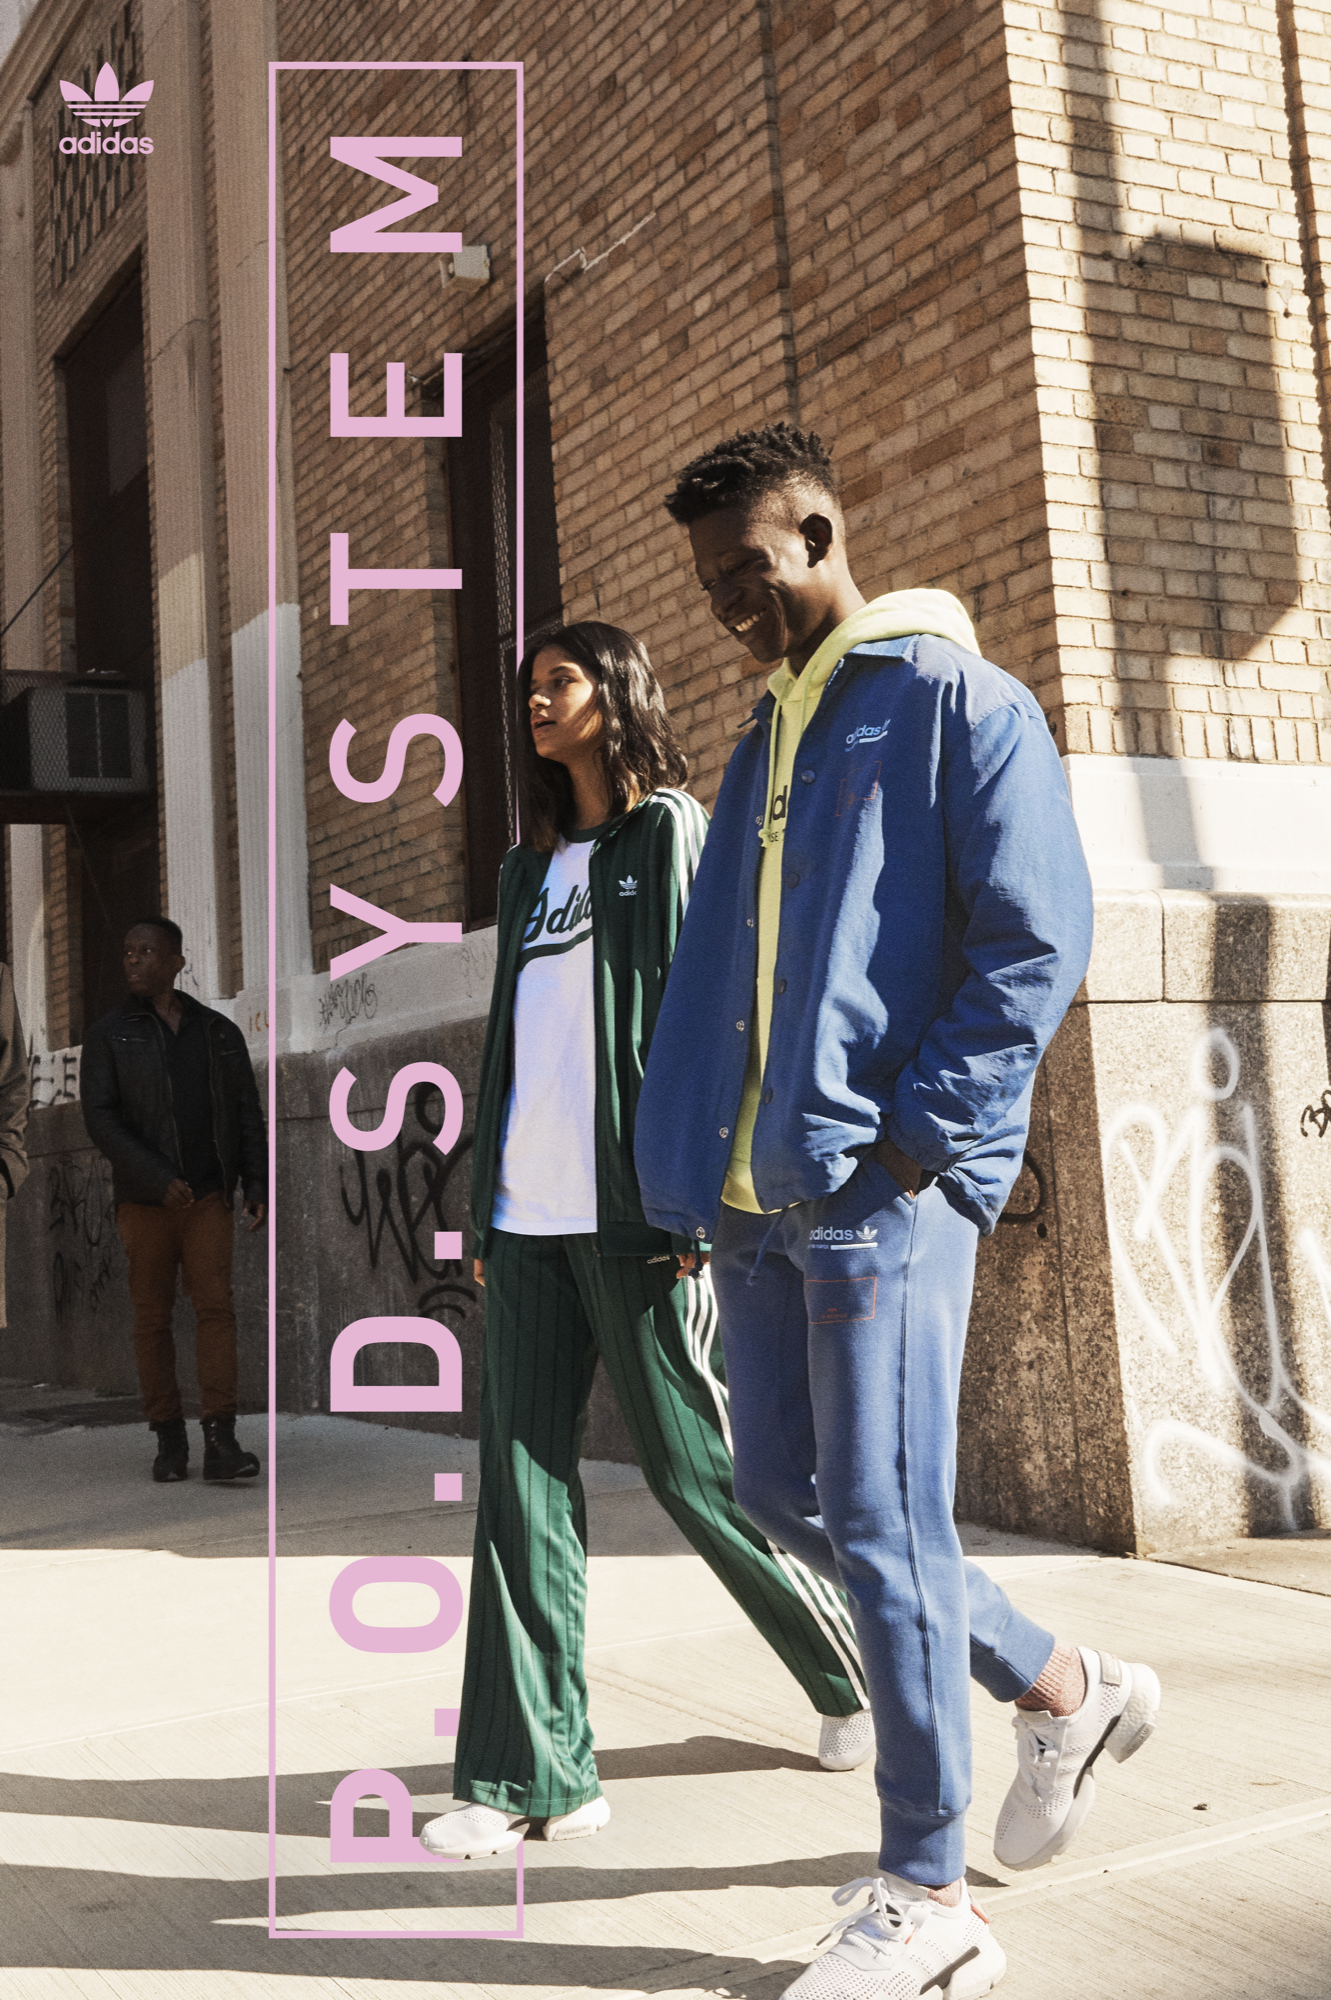 Styling for Adidas P.O.D. System Campaign